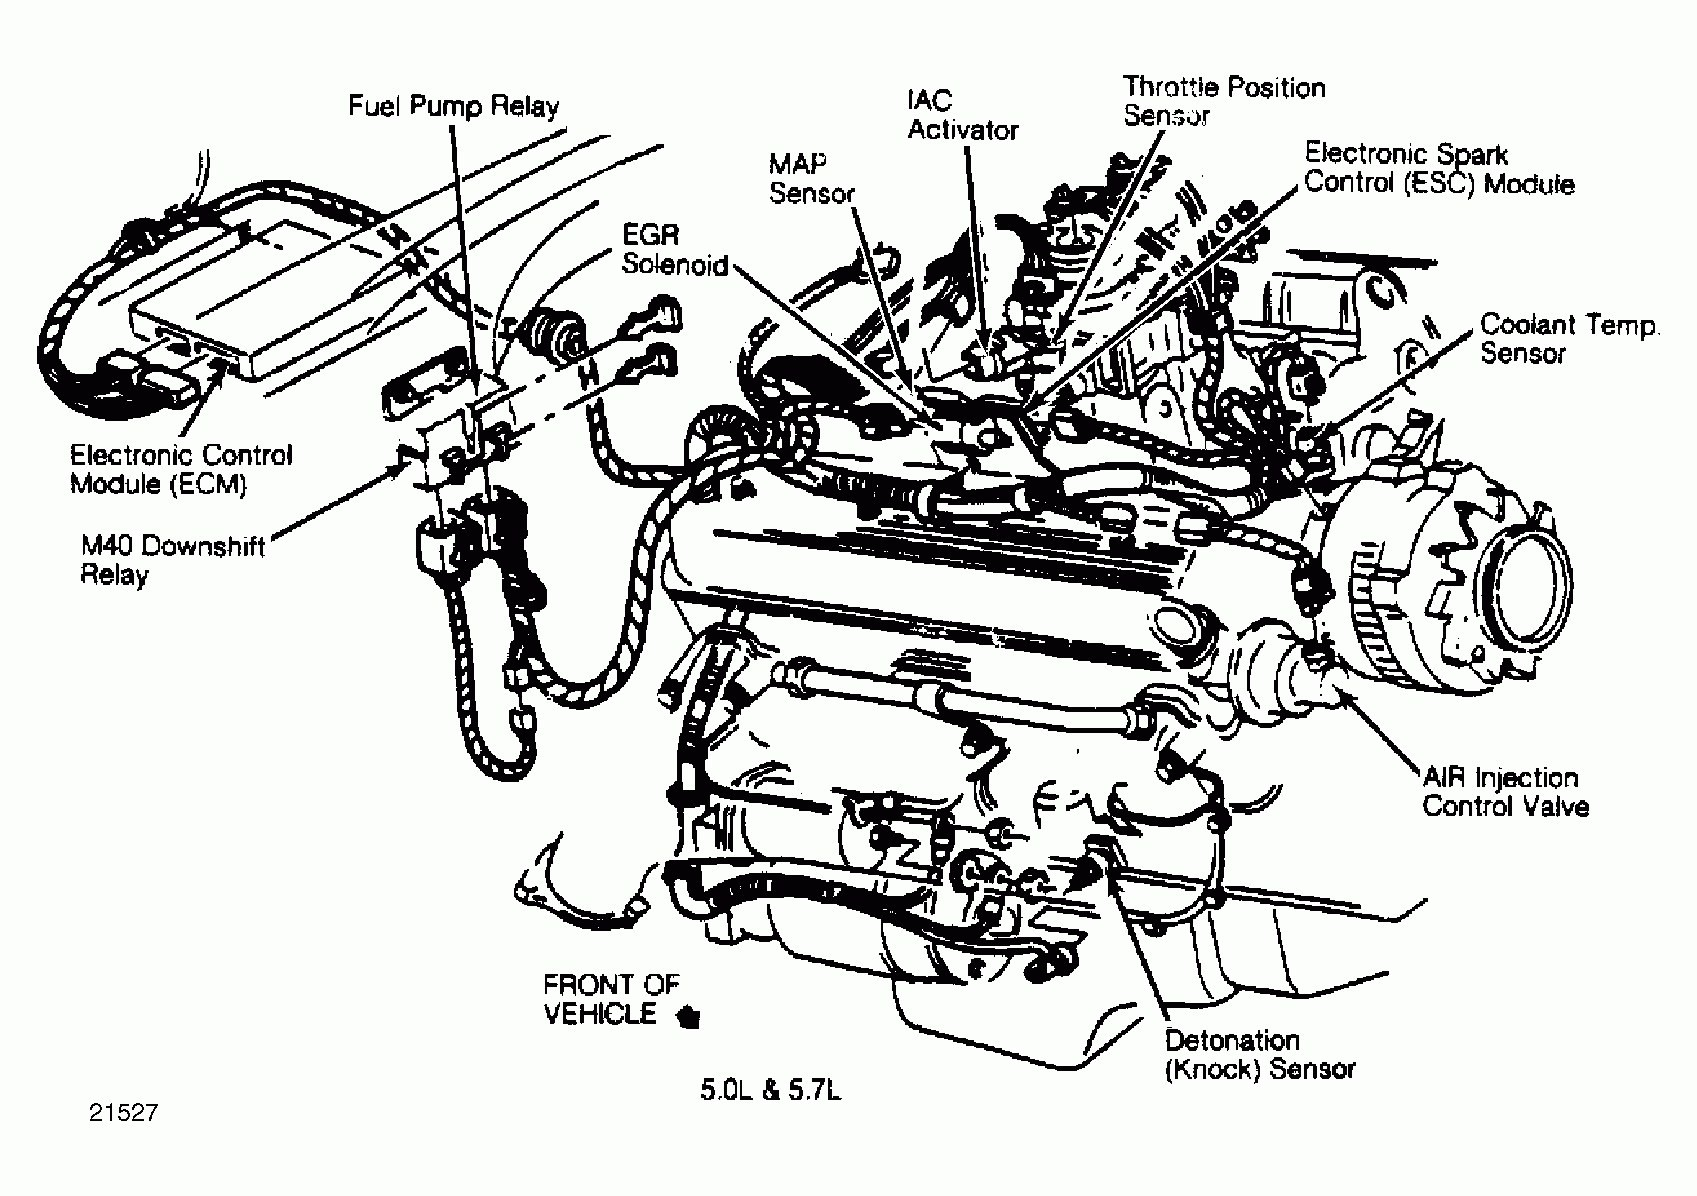 Small Engine Parts Diagram 350 Chevy Engine Parts Diagram Wiring Diagrams Konsult Of Small Engine Parts Diagram Looking for Snapper Model Wm B Rear Engine Riding Mower Repair